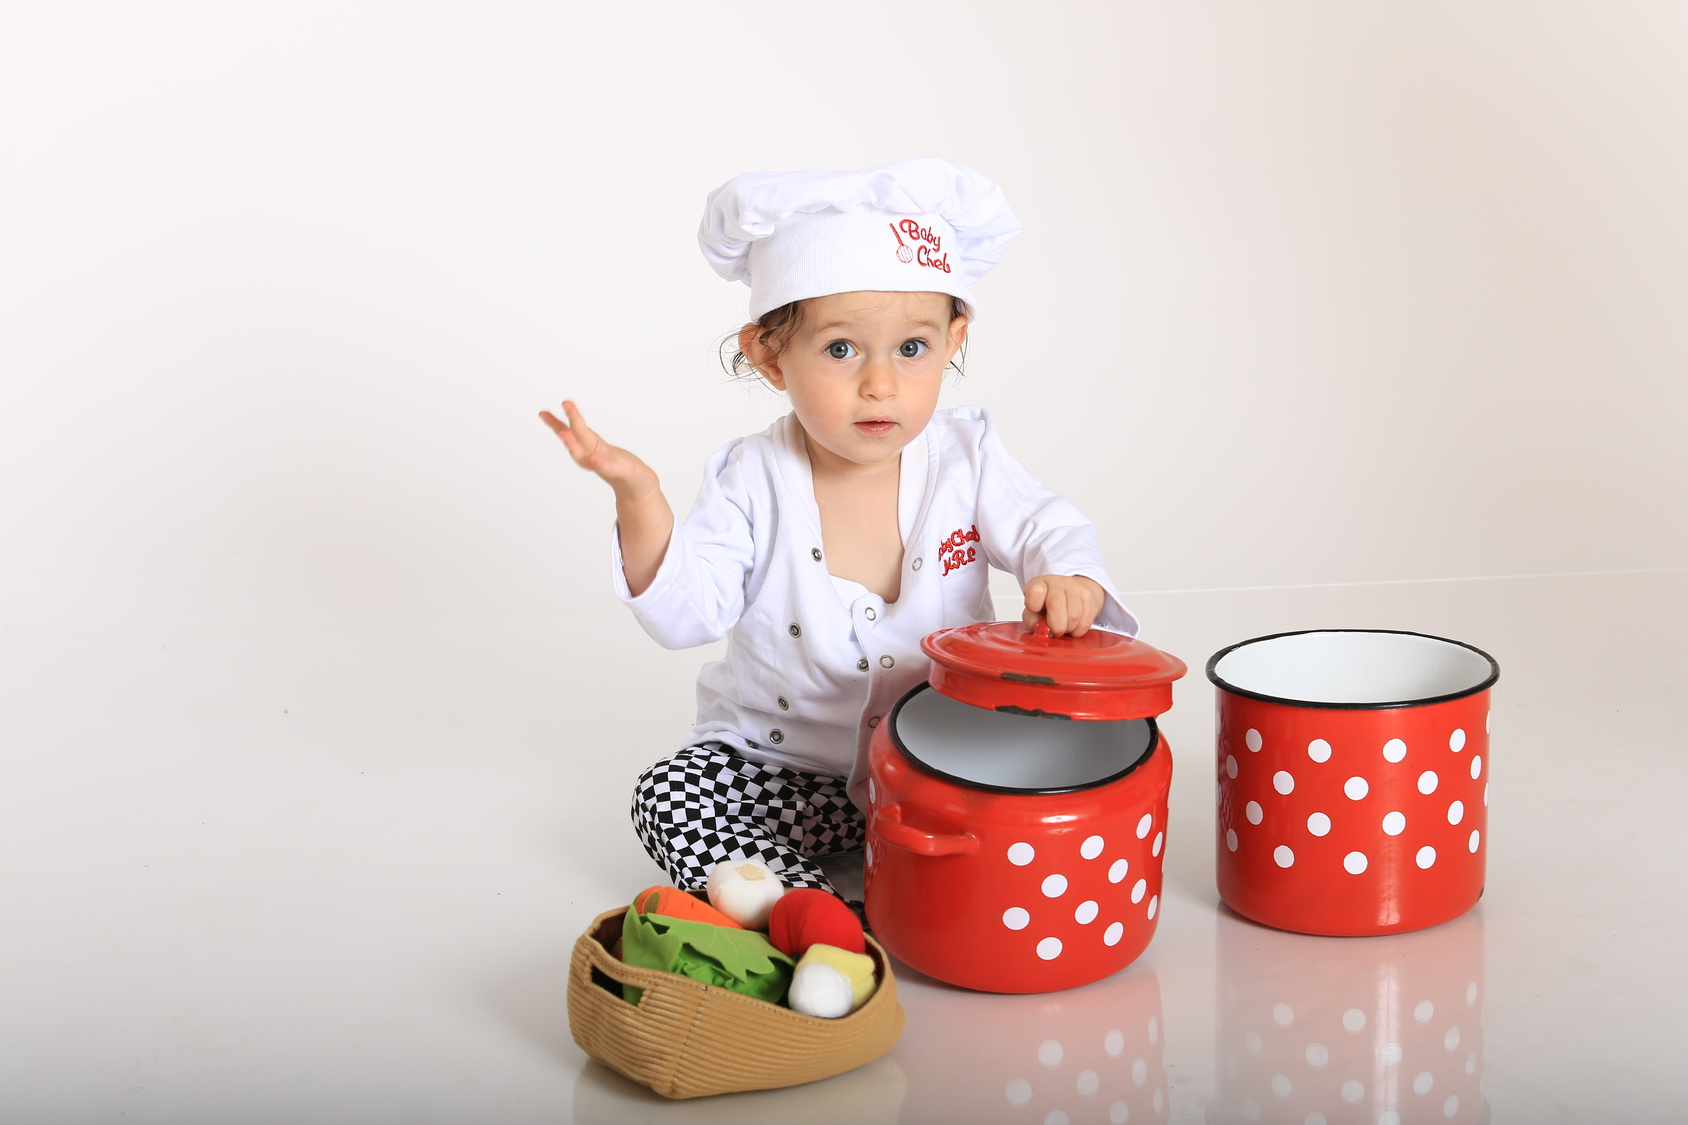 baby chef | veganuary | vegan baby clothes for january 2017